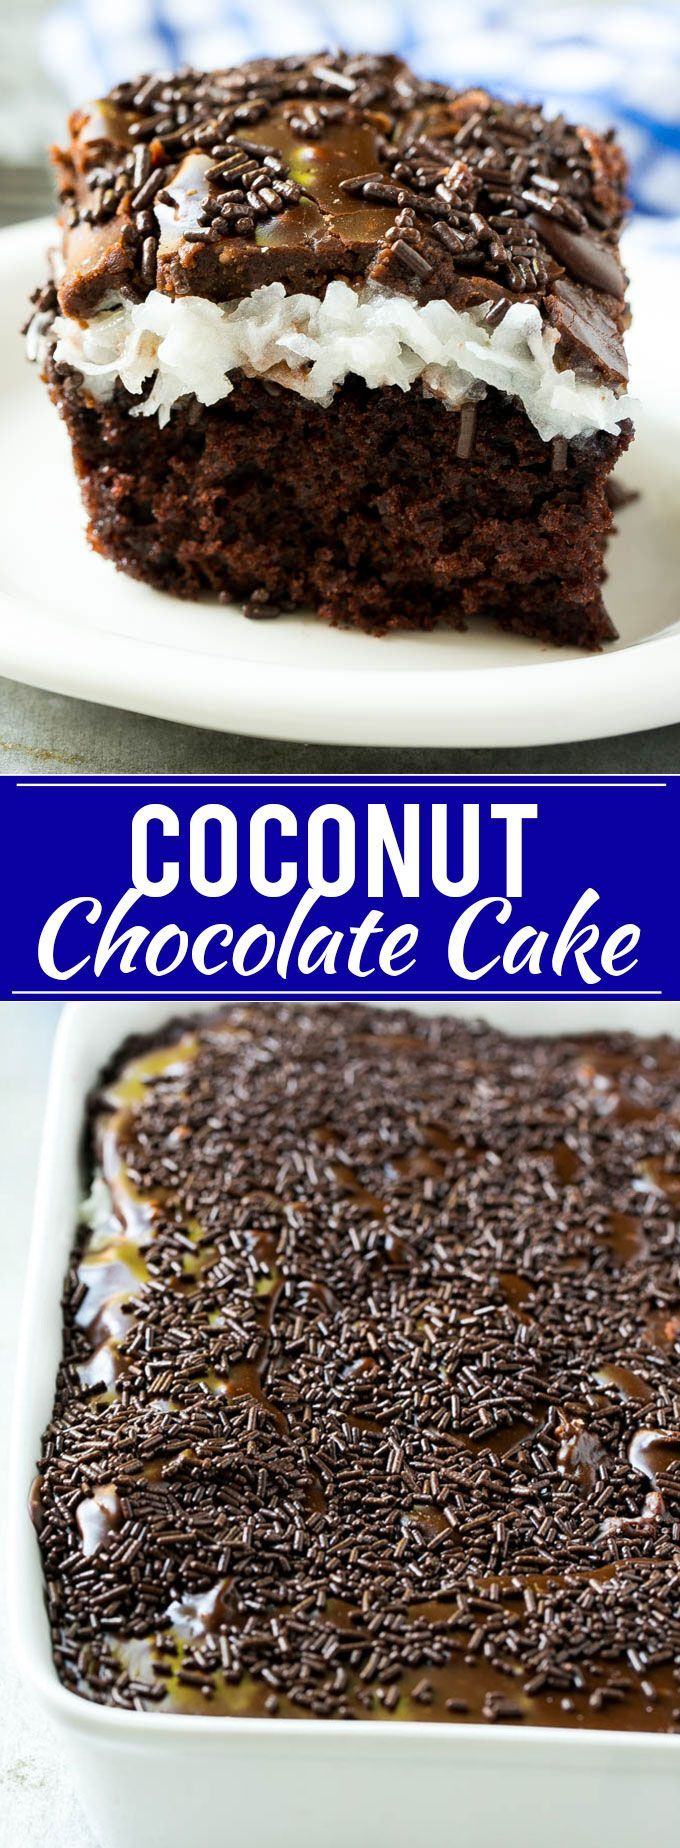 Chocolate+Coconut+Cake+Recipe+|+Easy+Chocolate+Cake+Recipe+|+Chocolate+Coconut+Recipe